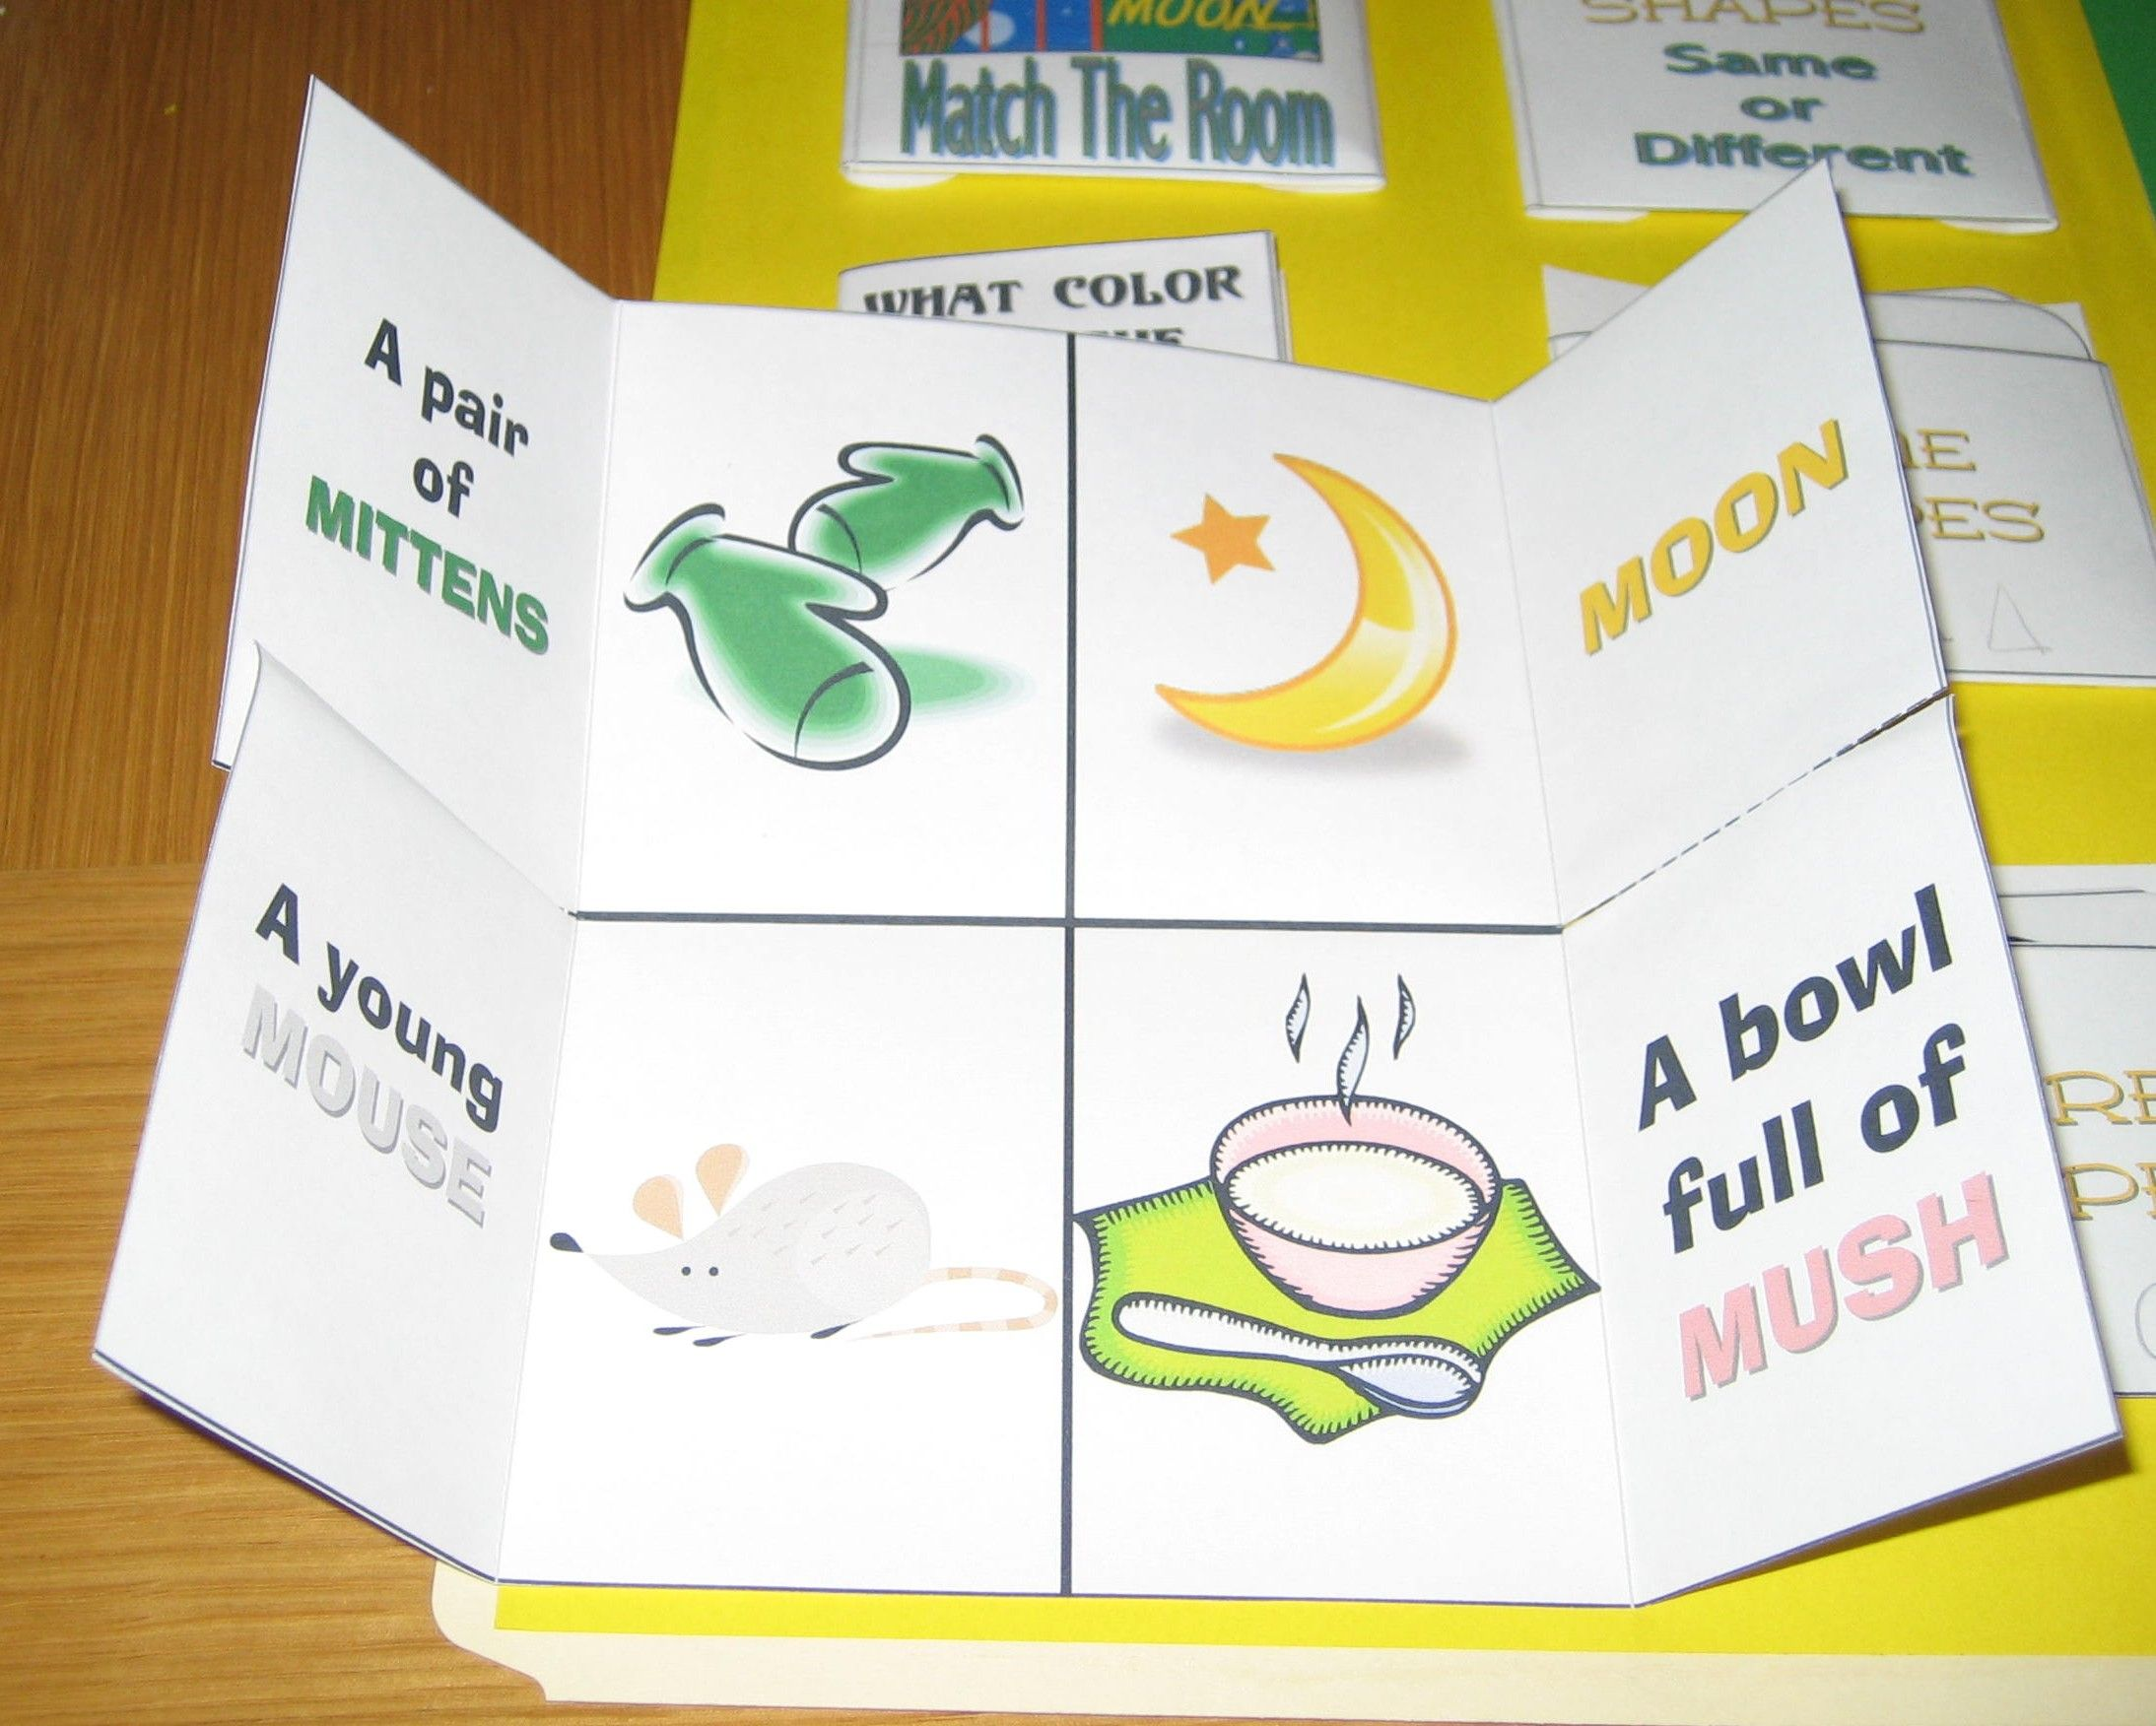 Interactive Handmade Lap Book With Simple Tasks Such As Identifying Colors And Shapes And